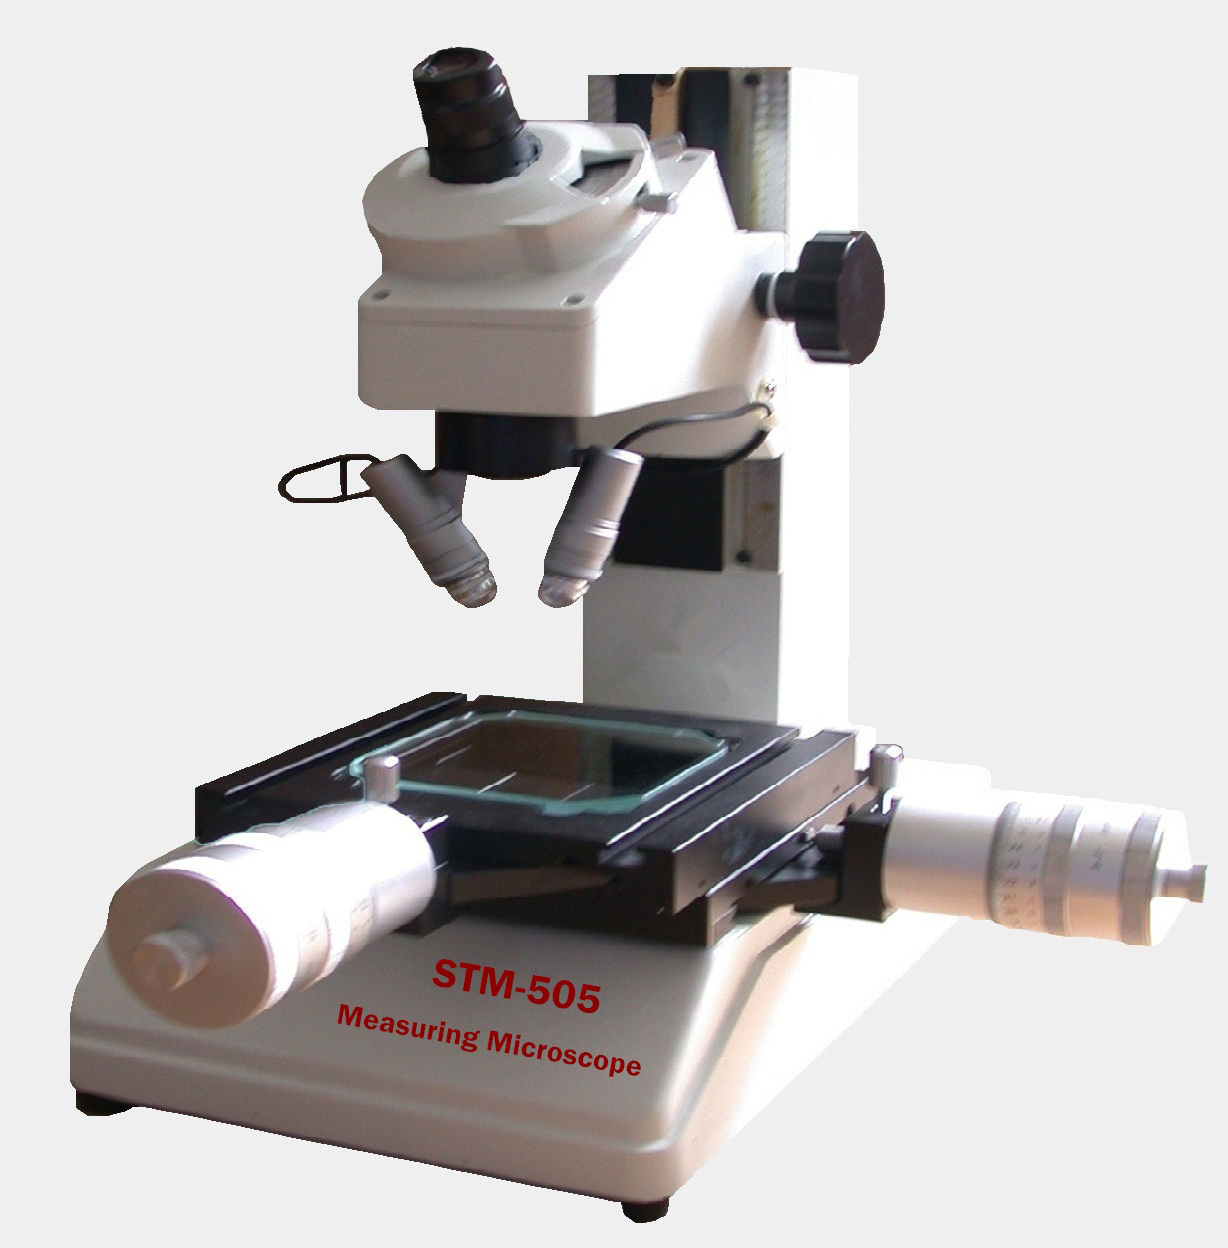 Tool-Maker's Microscopes STM-505